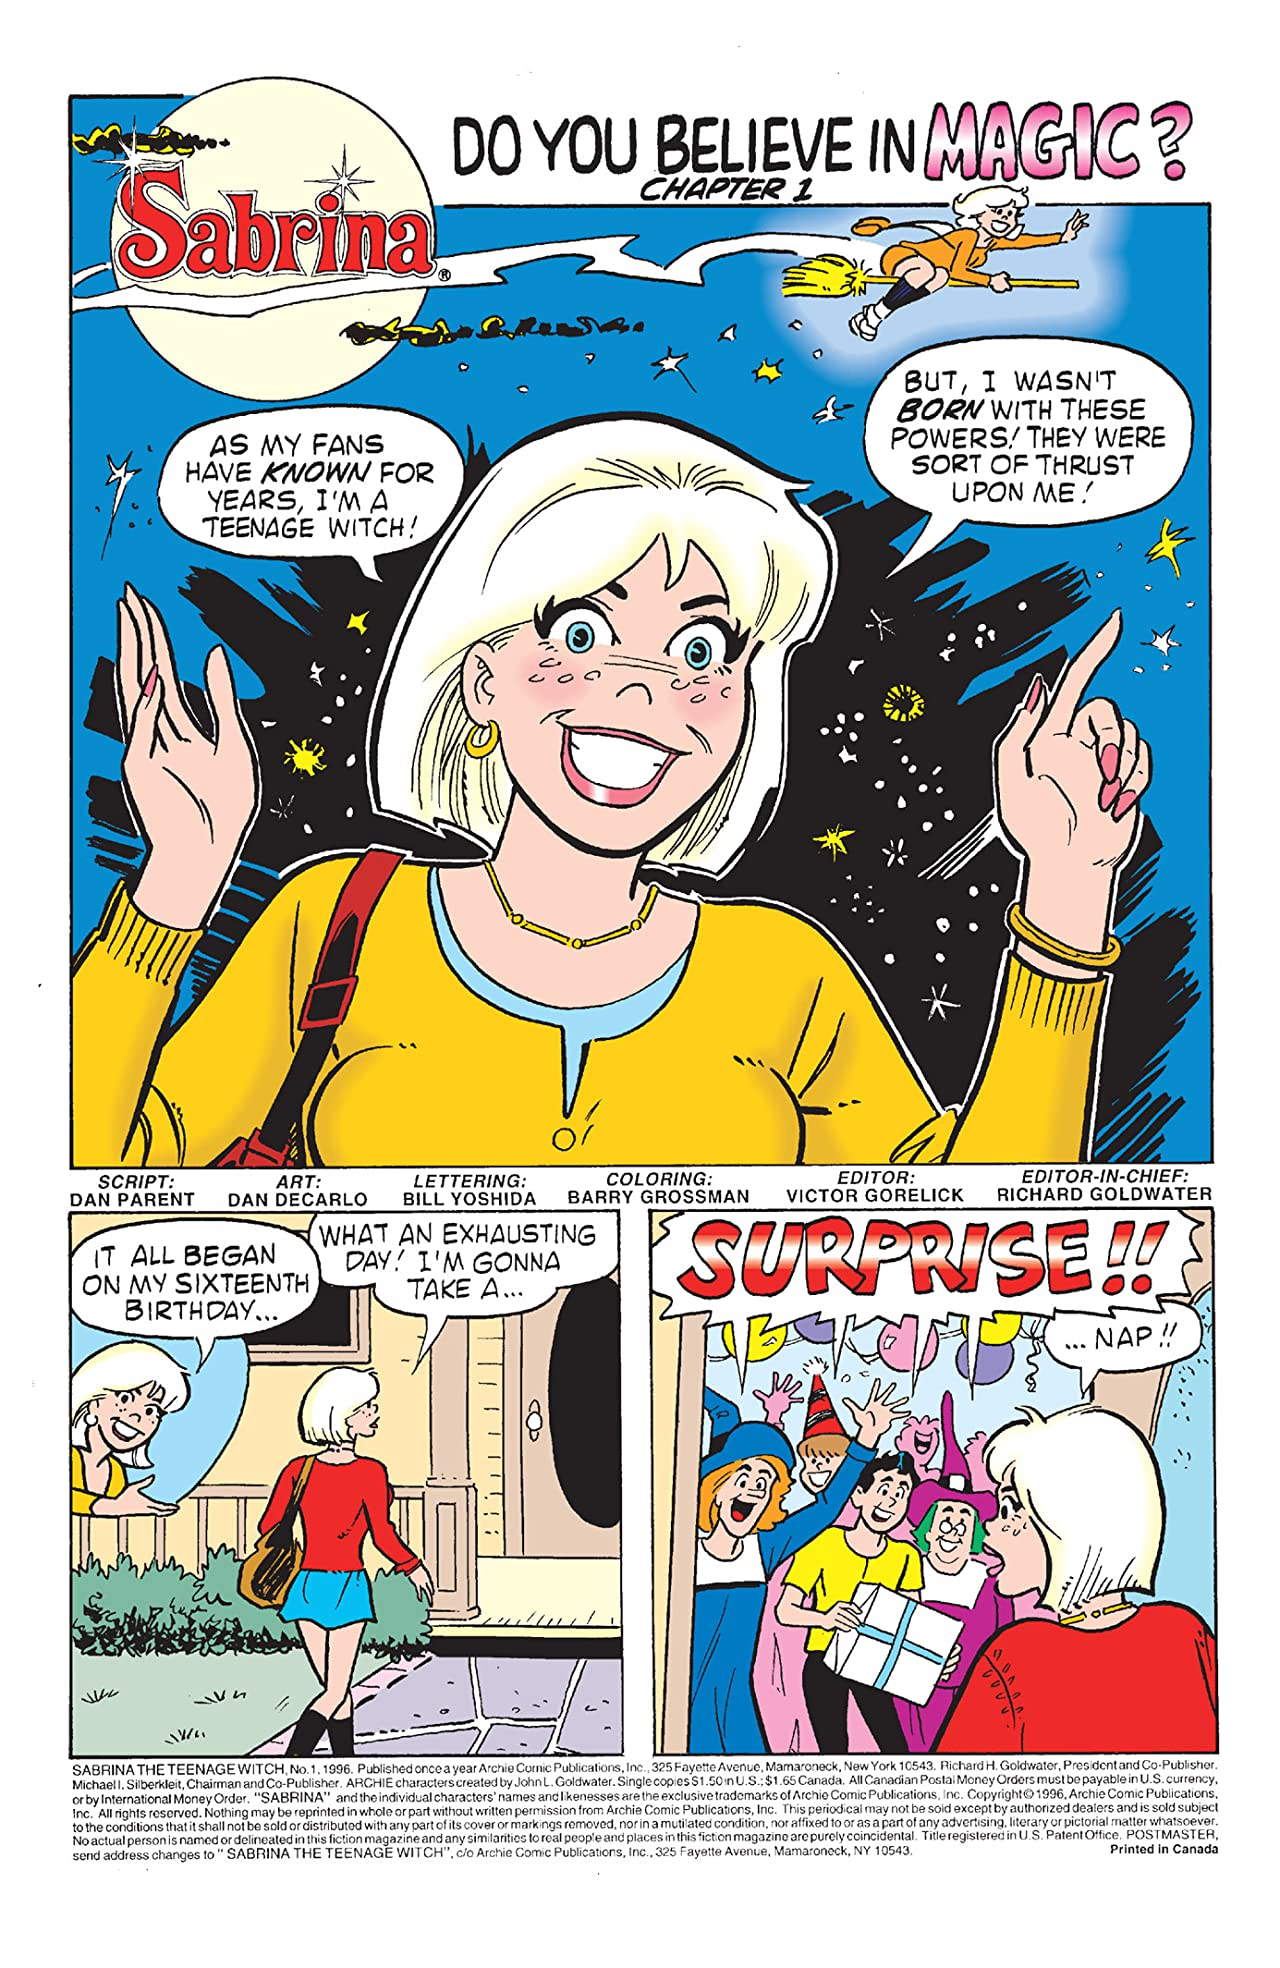 Sabrina the Teenage Witch #0: Collector's Edition